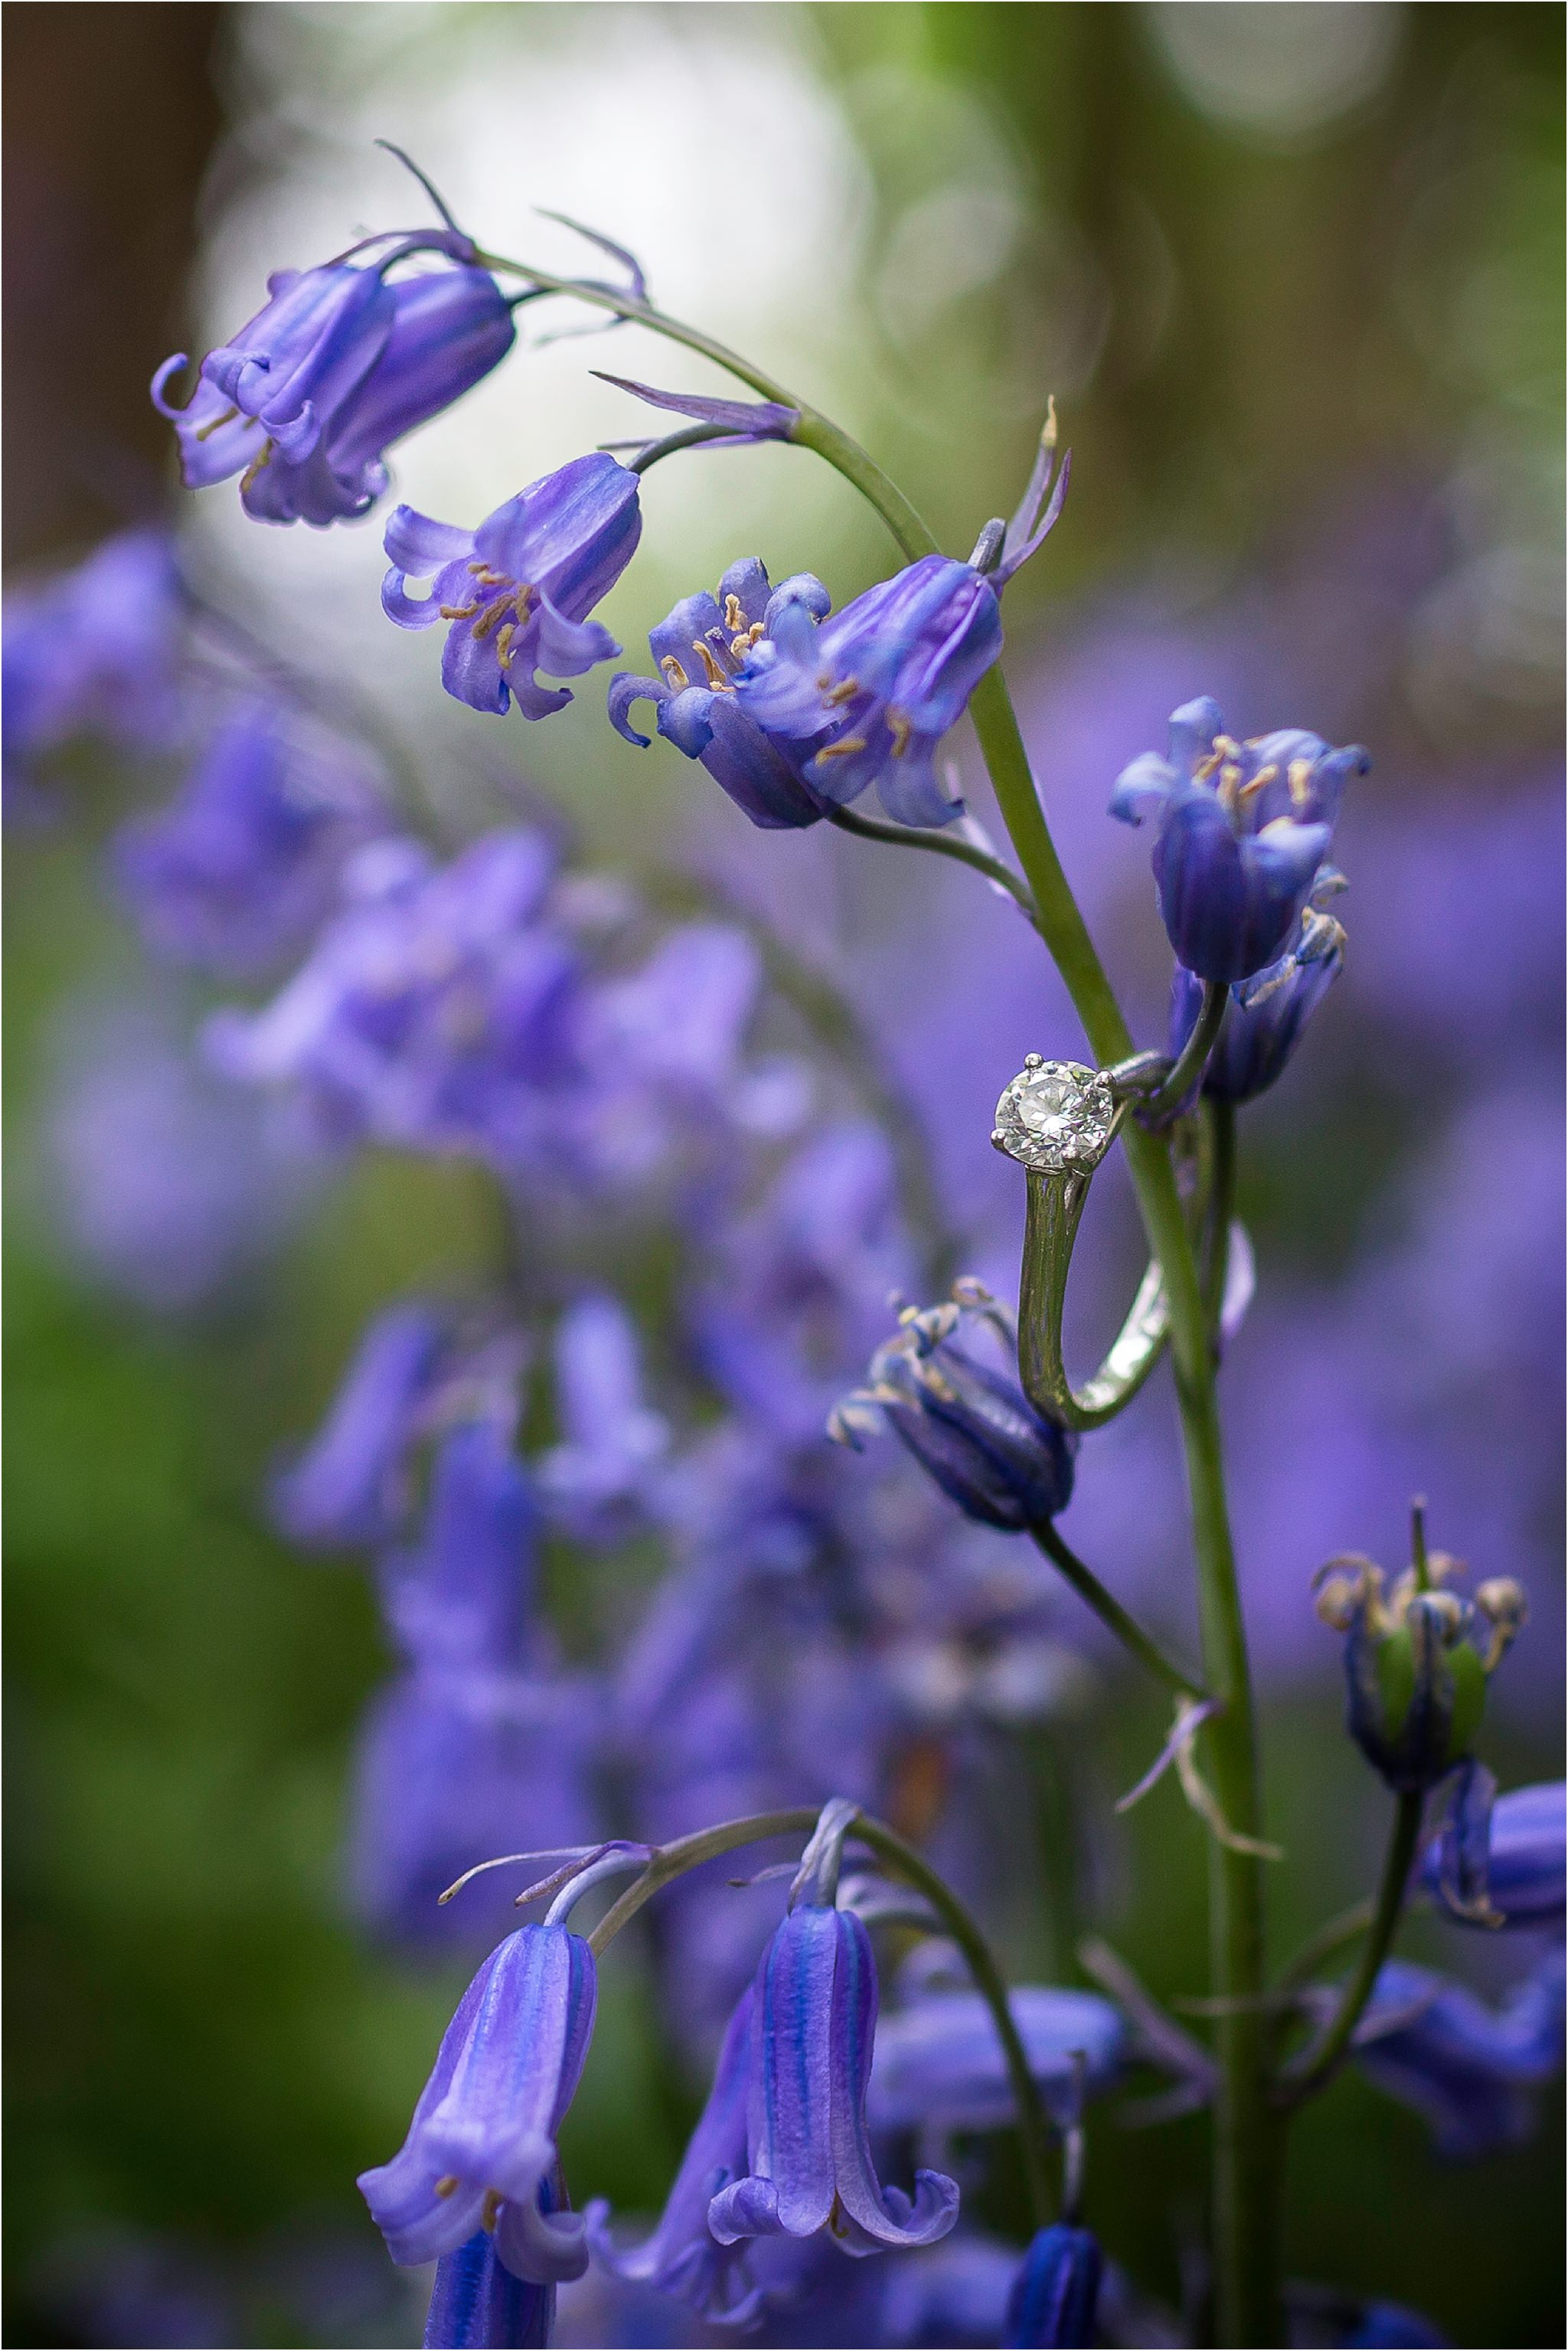 Close up of a bluebell with an engagement ring hanging from it.